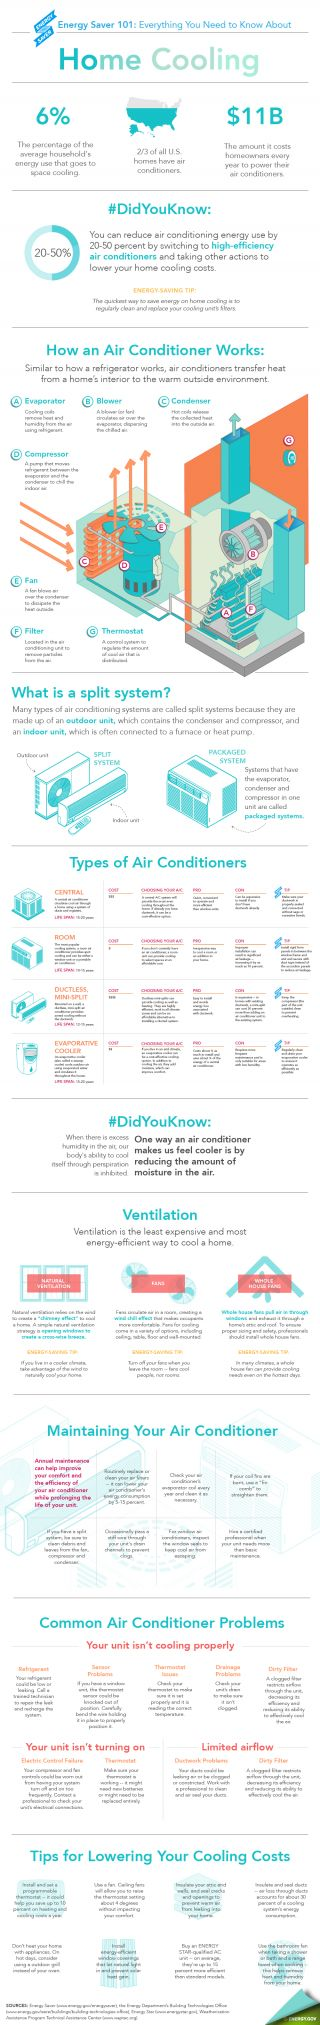 Energy Saver 101 Infographic: Home Cooling